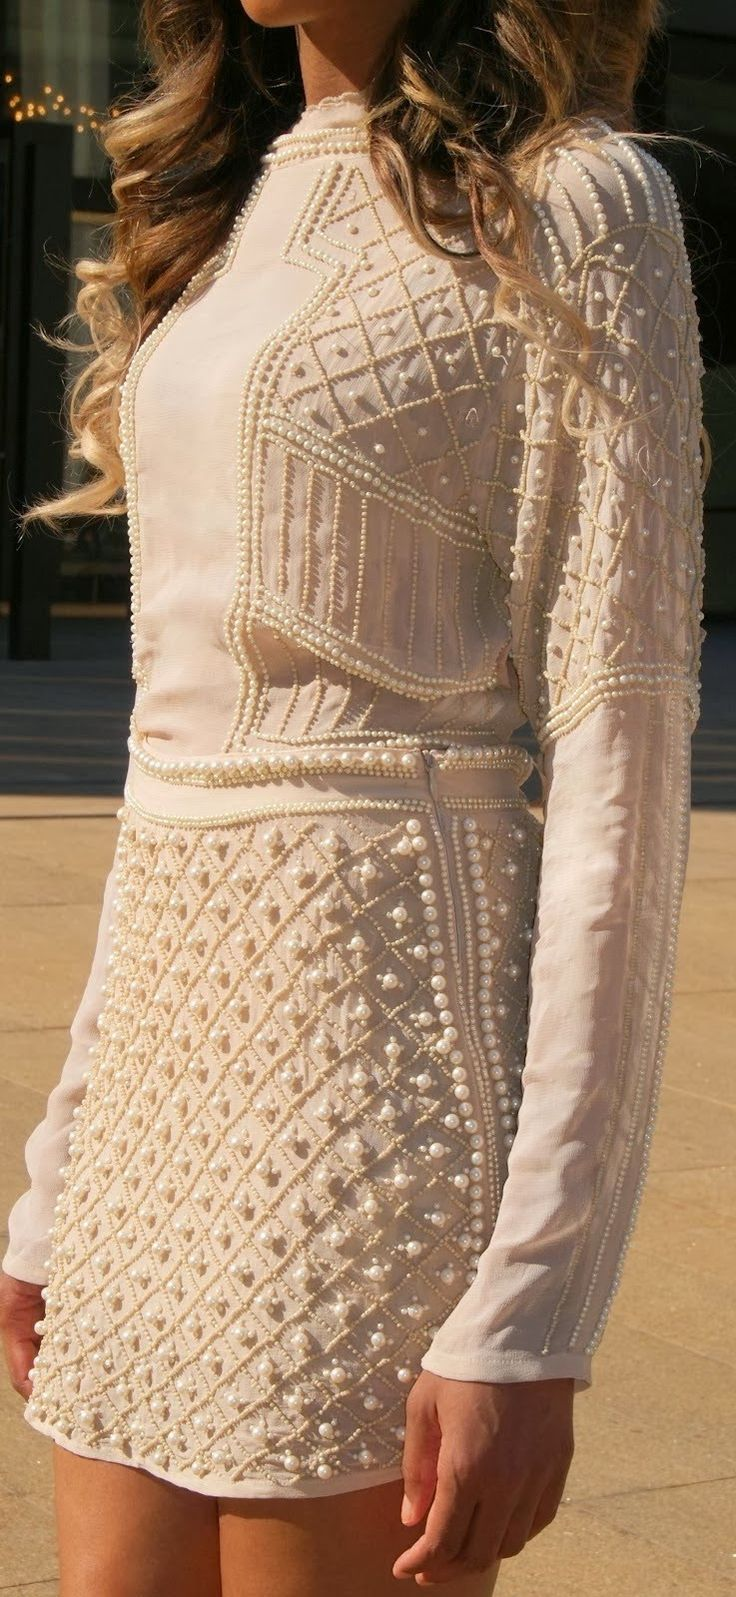 Pinterest @Lvngdedgrl- Stylish Ladies Dress :: Off White :: Beaded